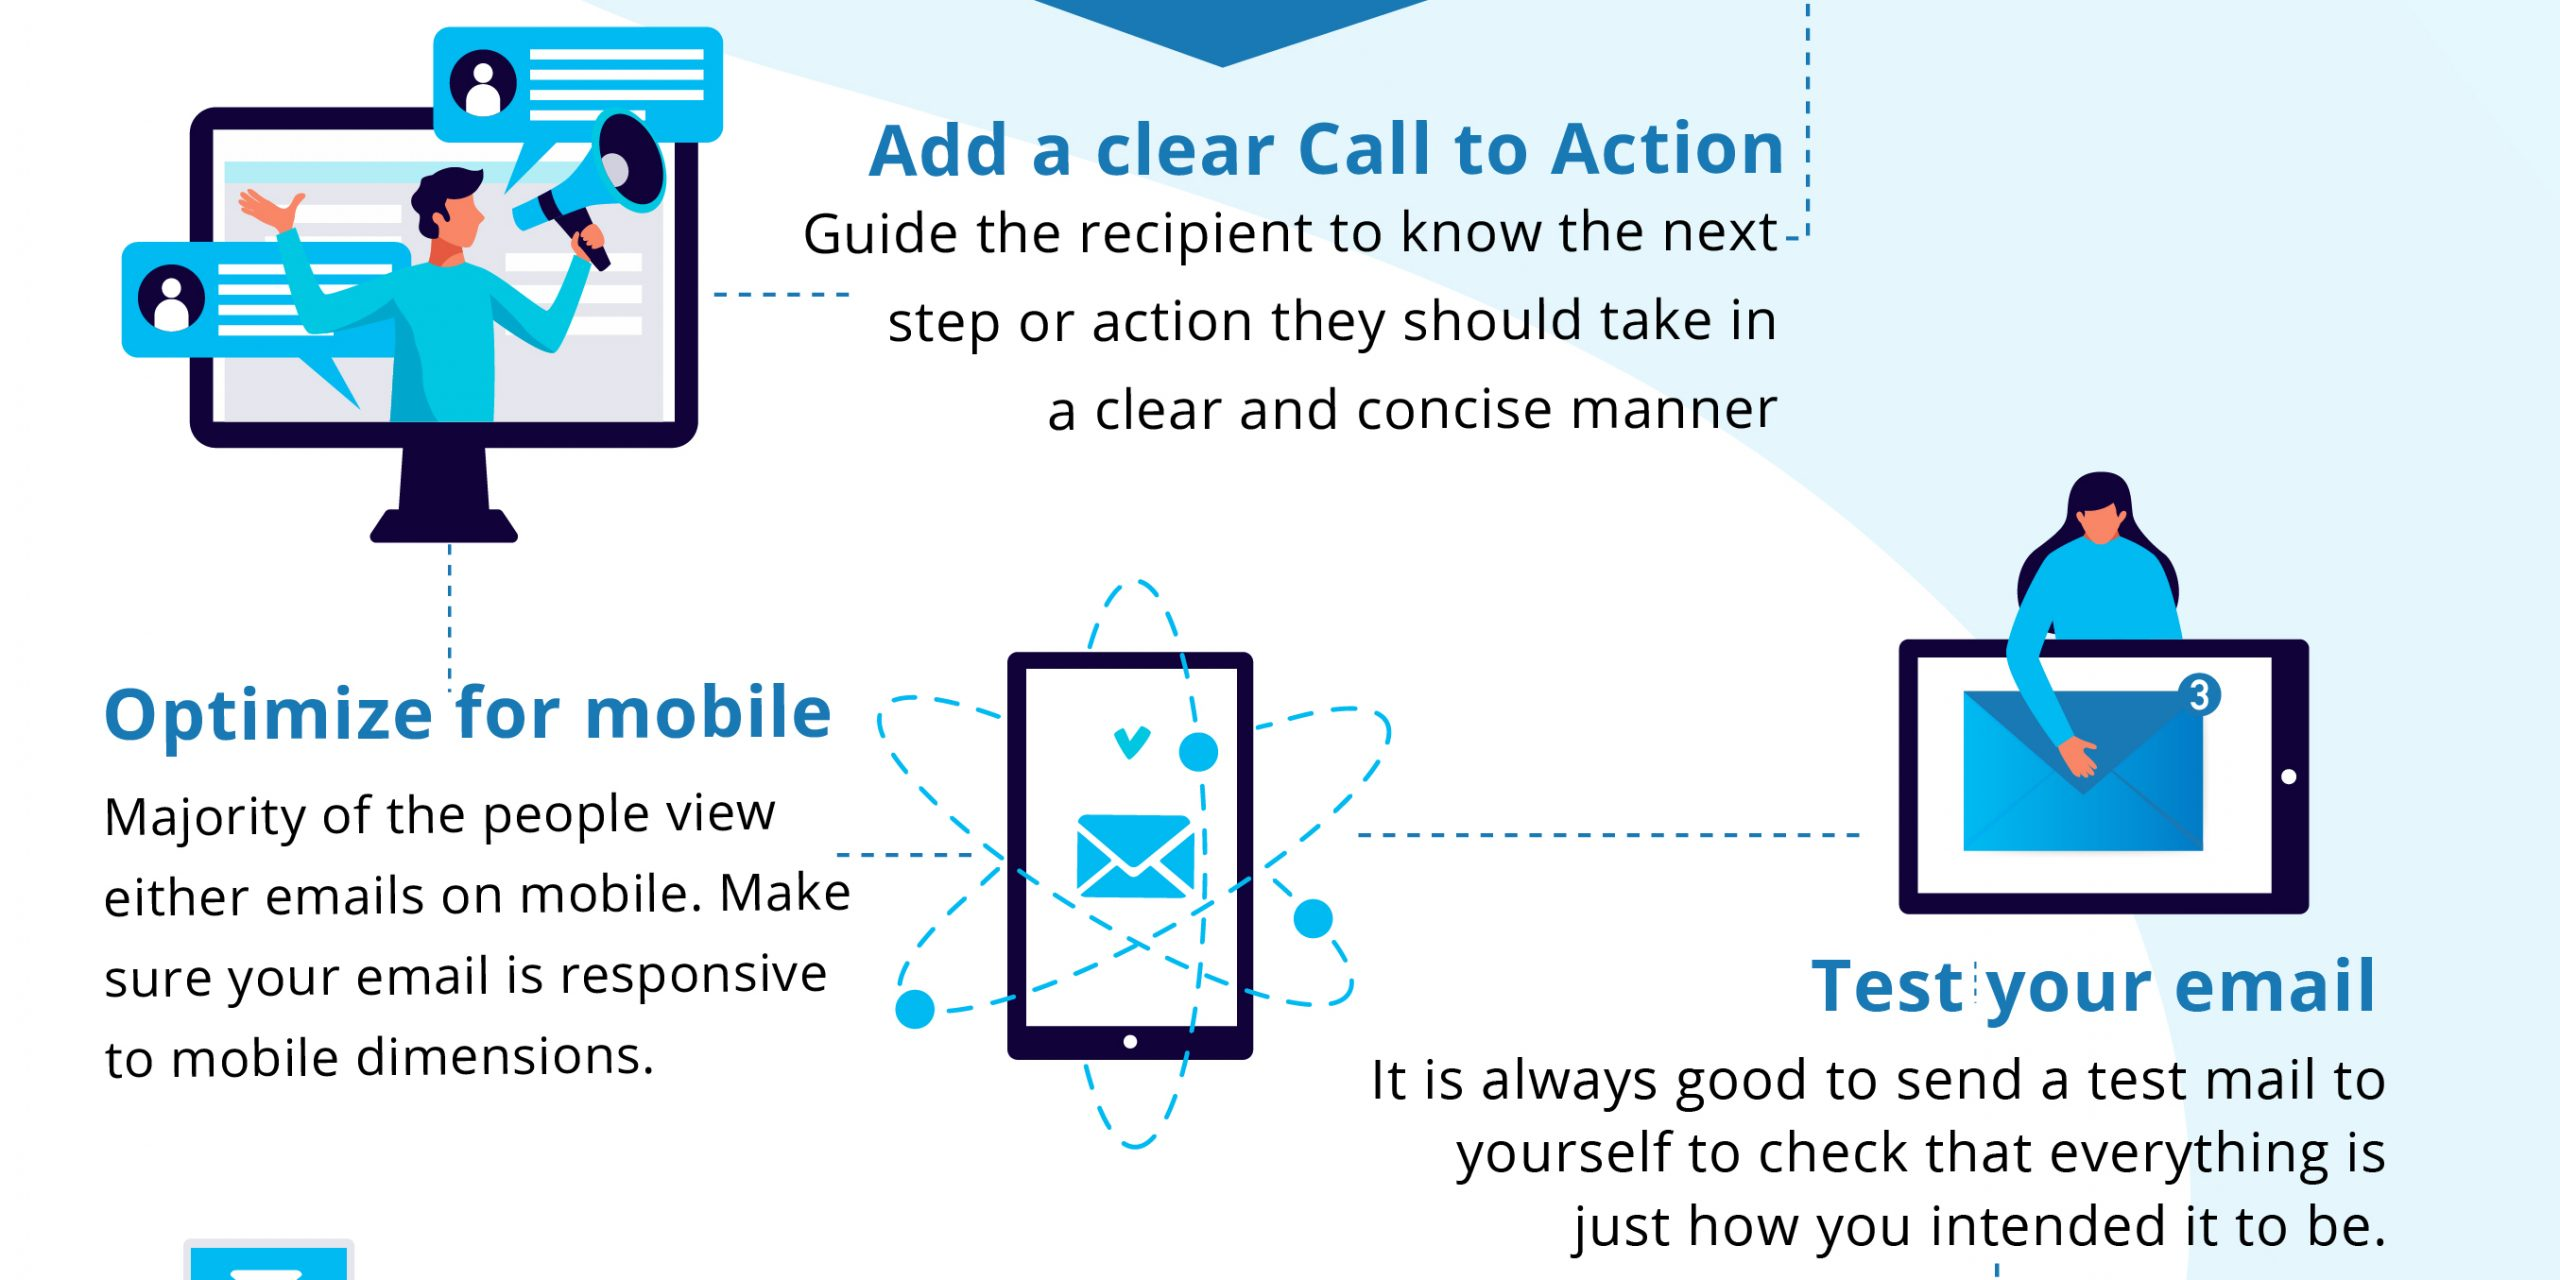 Add a clear Call to Action, Optimize for mobile, Test you email